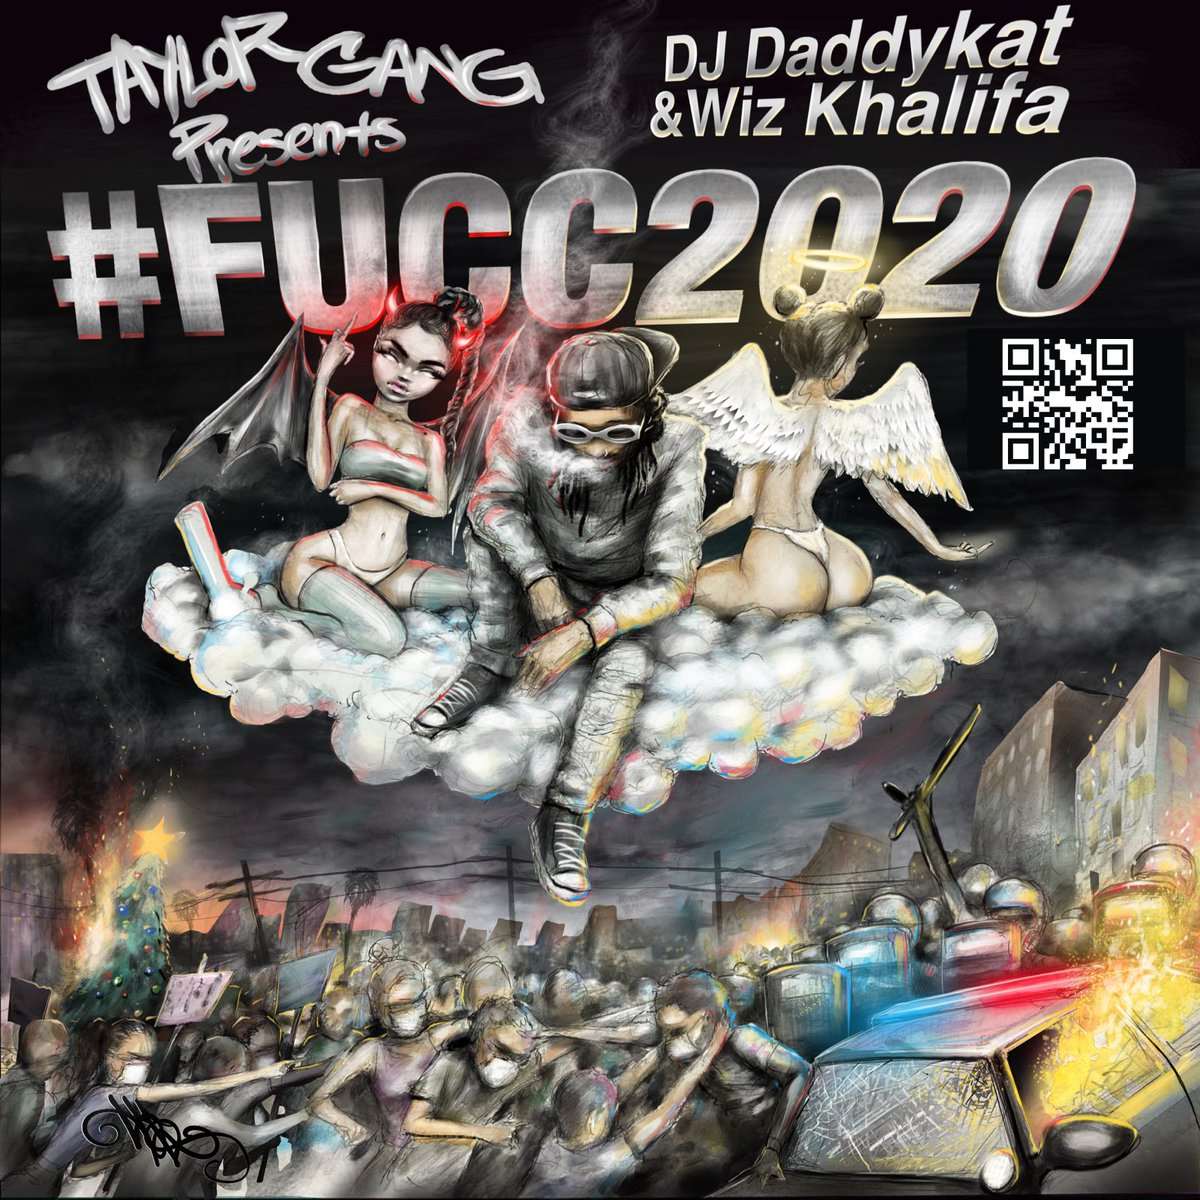 Replying to @wizkhalifa: TAYLORS BRING IN 2021 WITH THE #FUCC2020 PLAYLIST   🚨Stream it at